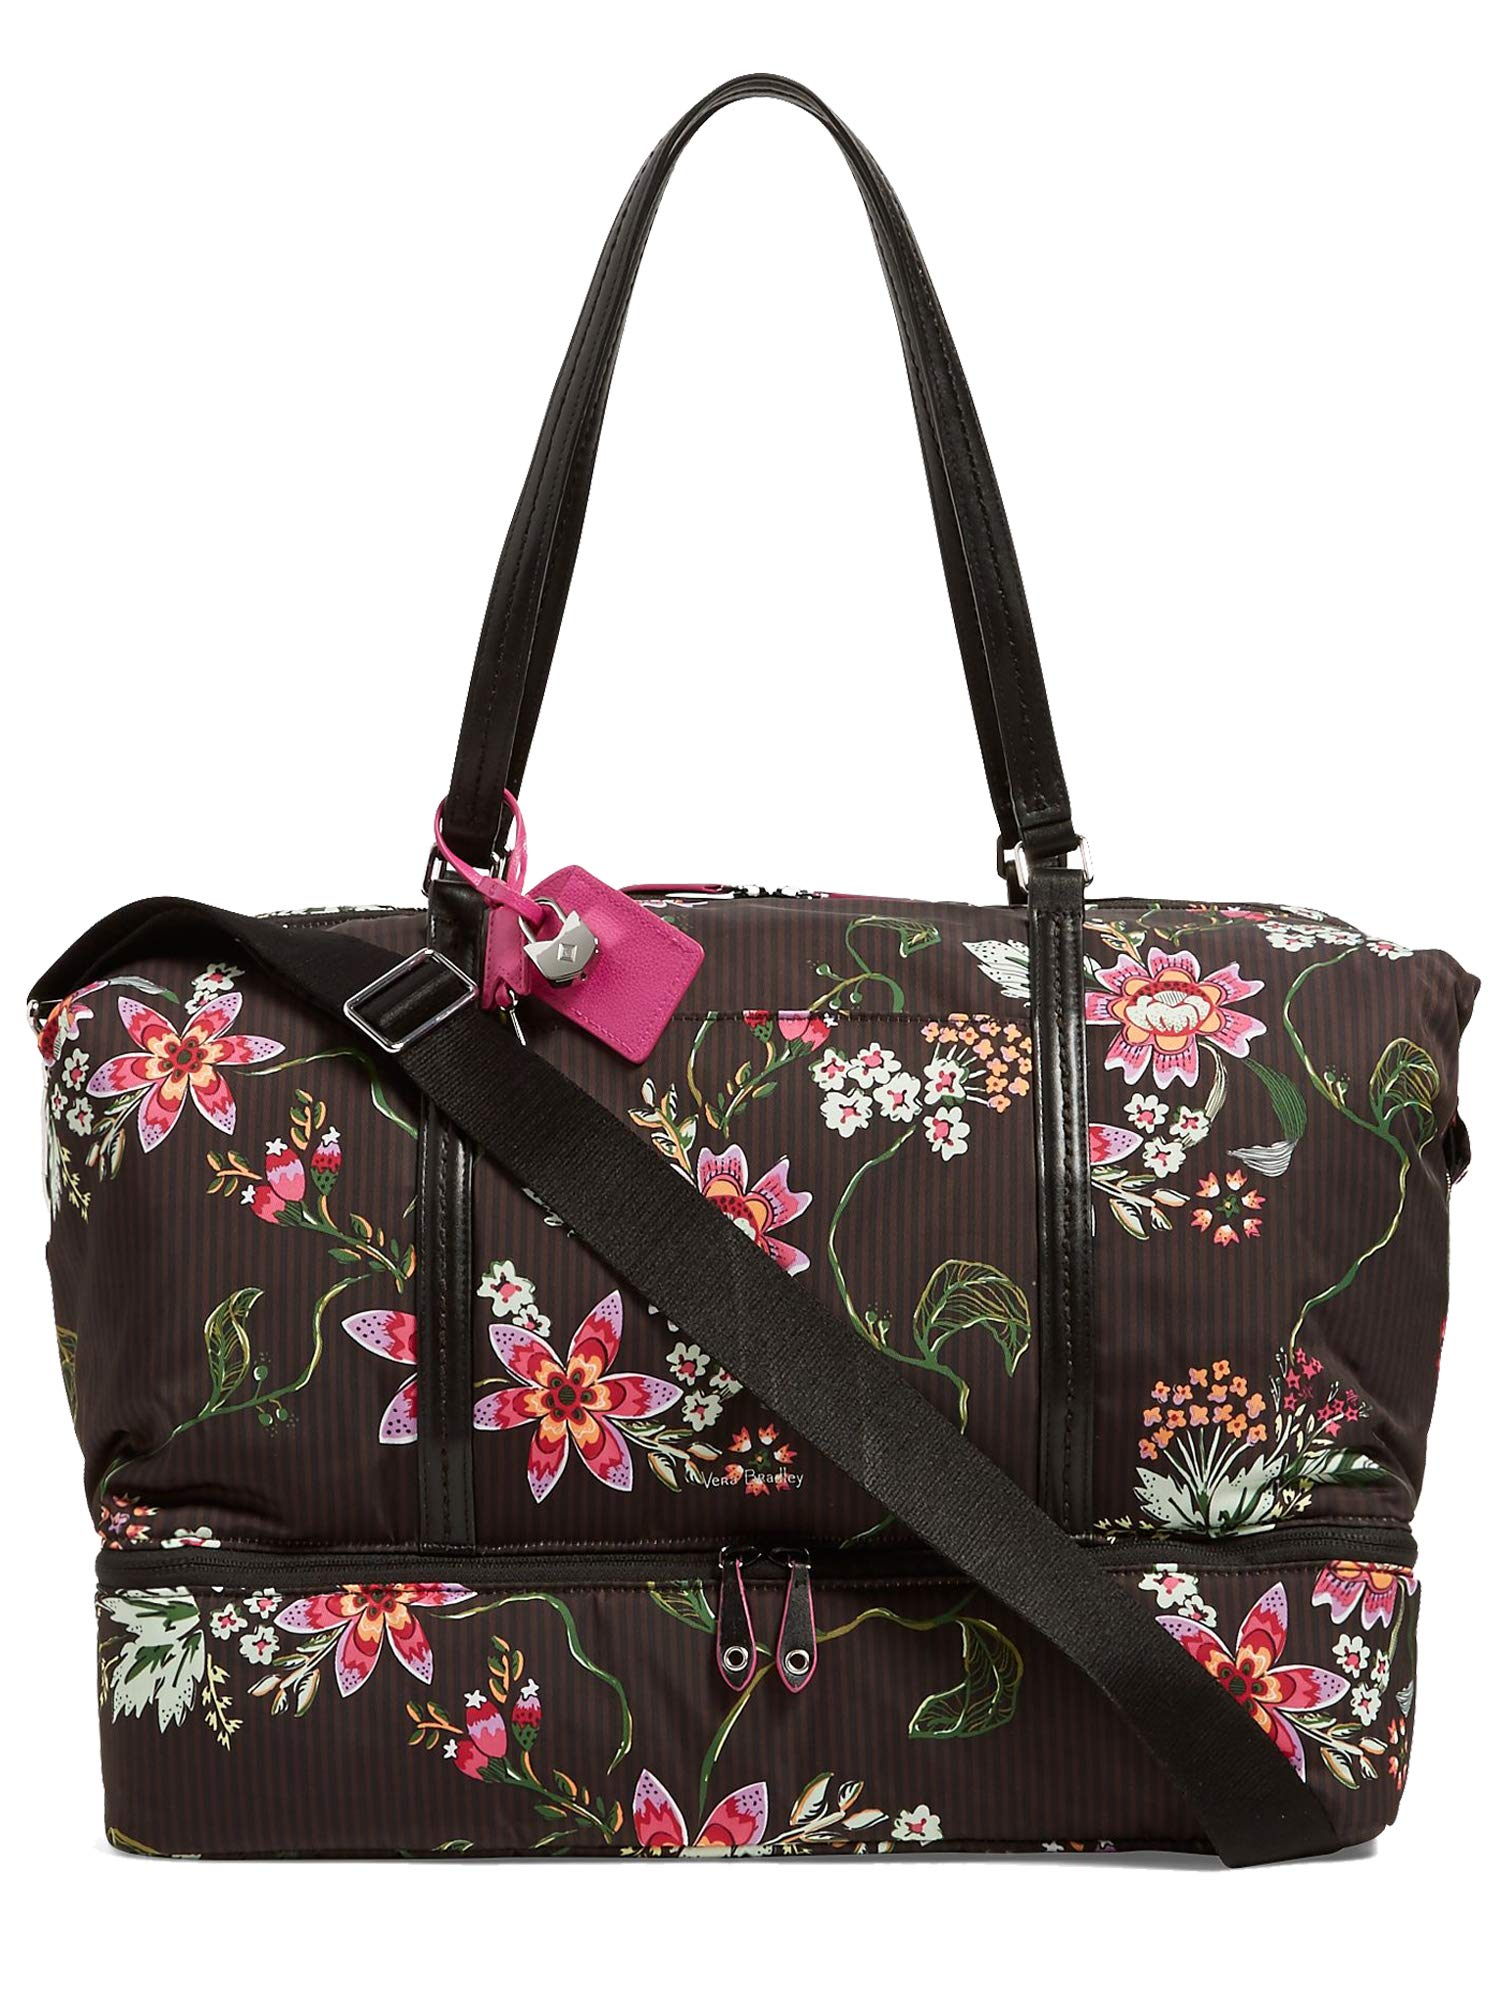 Vera Bradley Women's Midtown Travel Bag Airy Floral One Size